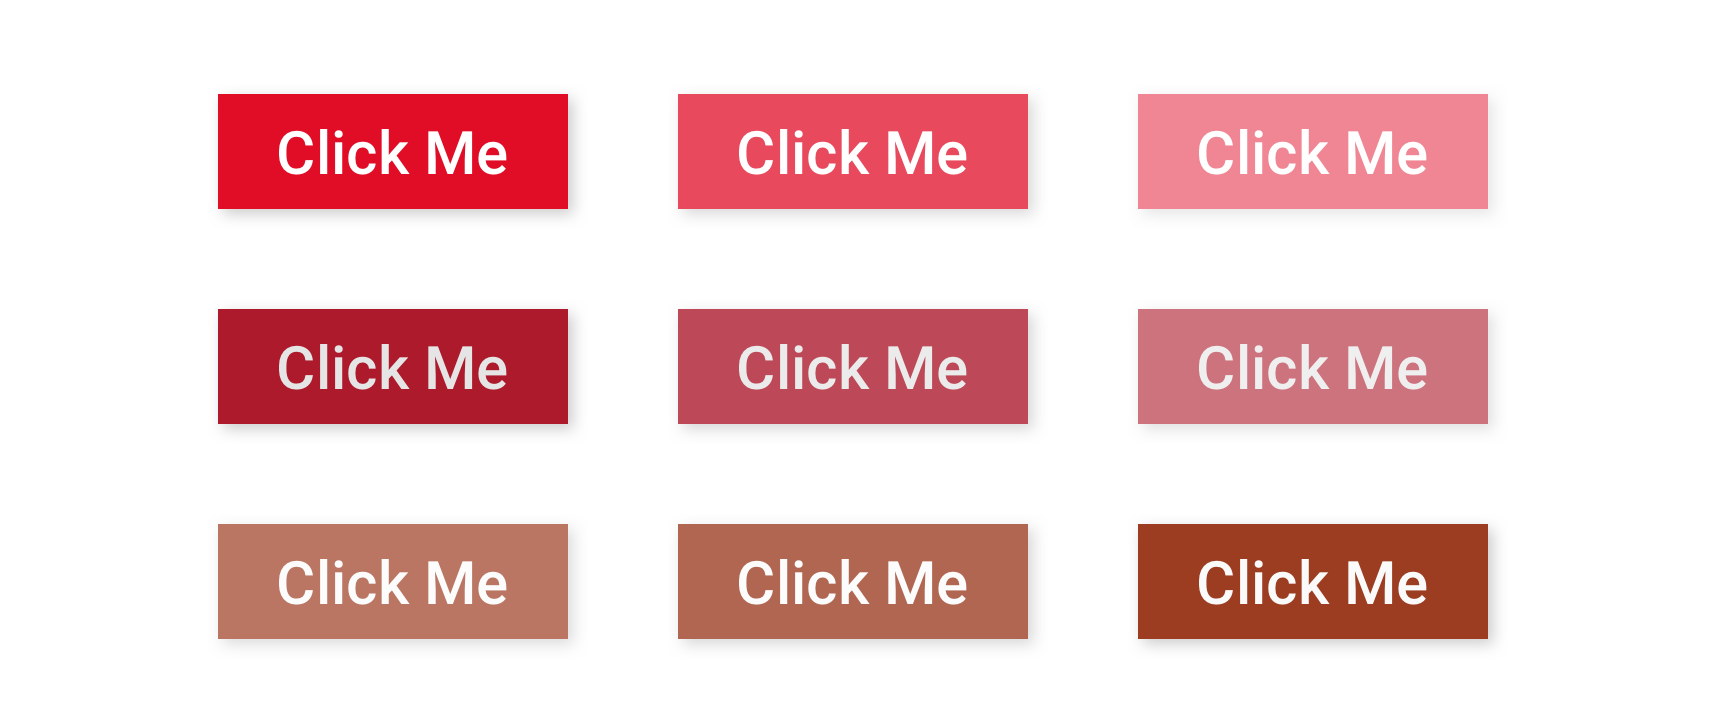 web button contrast test for web ux